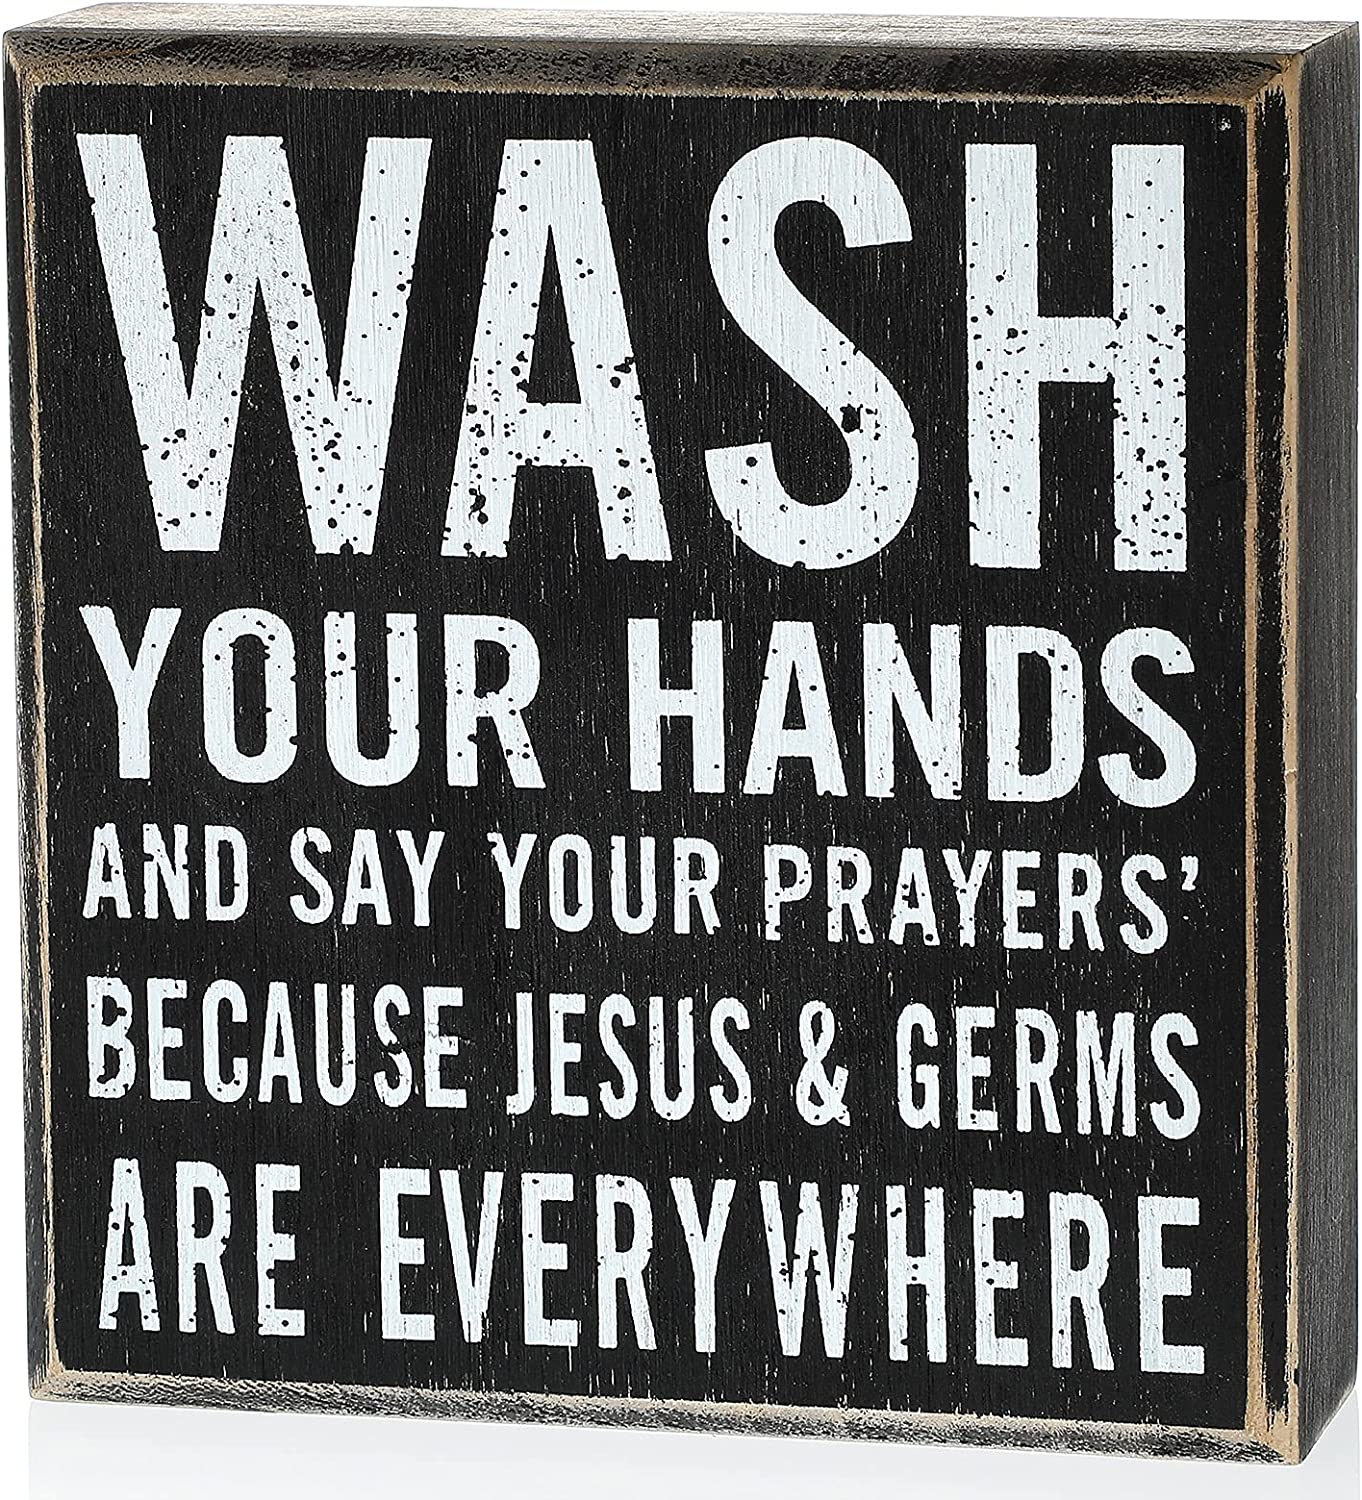 Jetec Wash Your Hands Wooden Sign Classic Black and White Box Sign Wood Plaque with Inspiring Quotes, Wall and Tabletop Decoration, 6 x 6.3 x 1.8 Inch